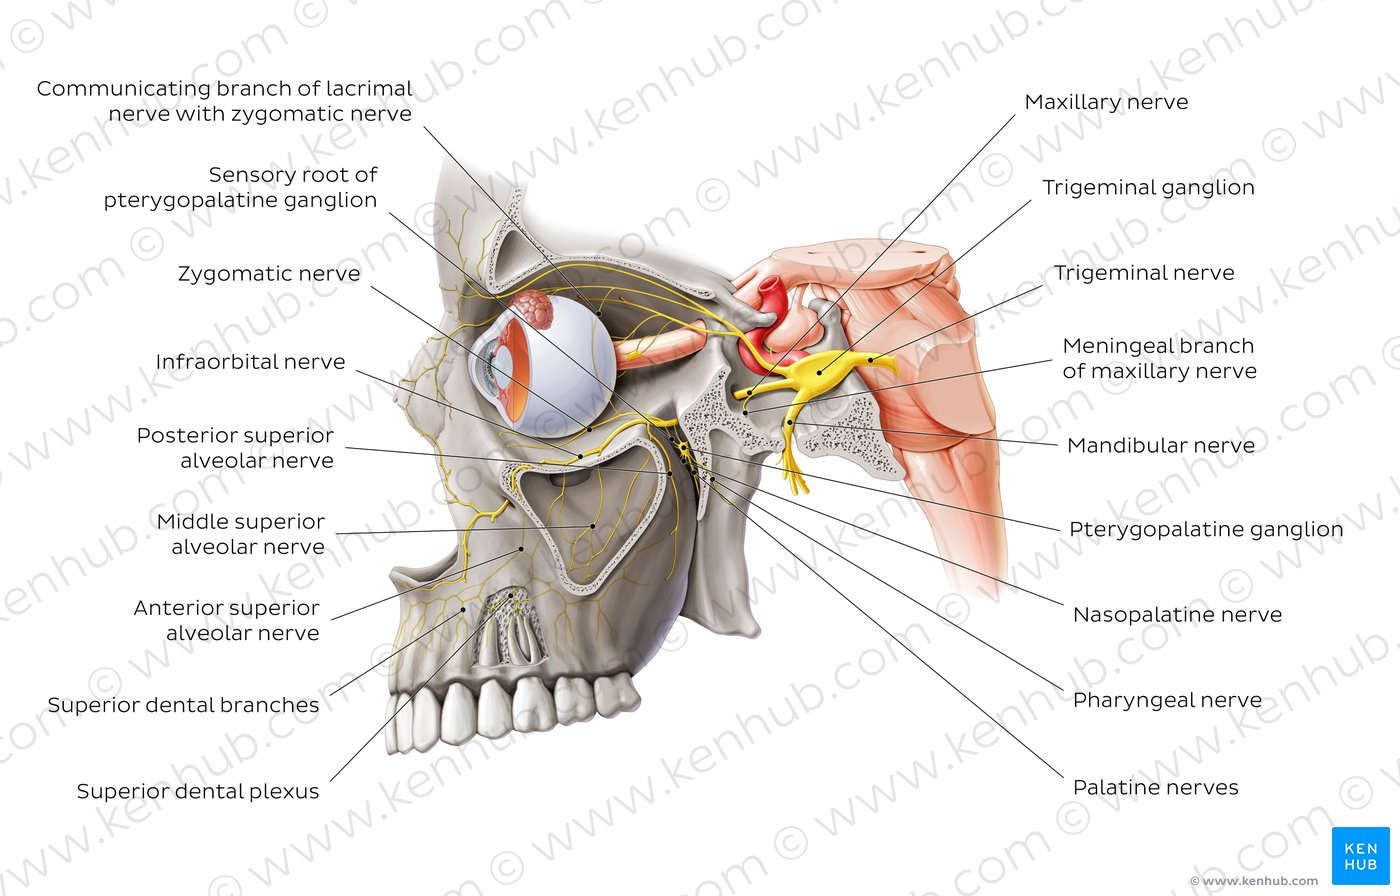 trigeminal nerve diagram 1995 ford f150 wiring maxillary innervation imagenesmy